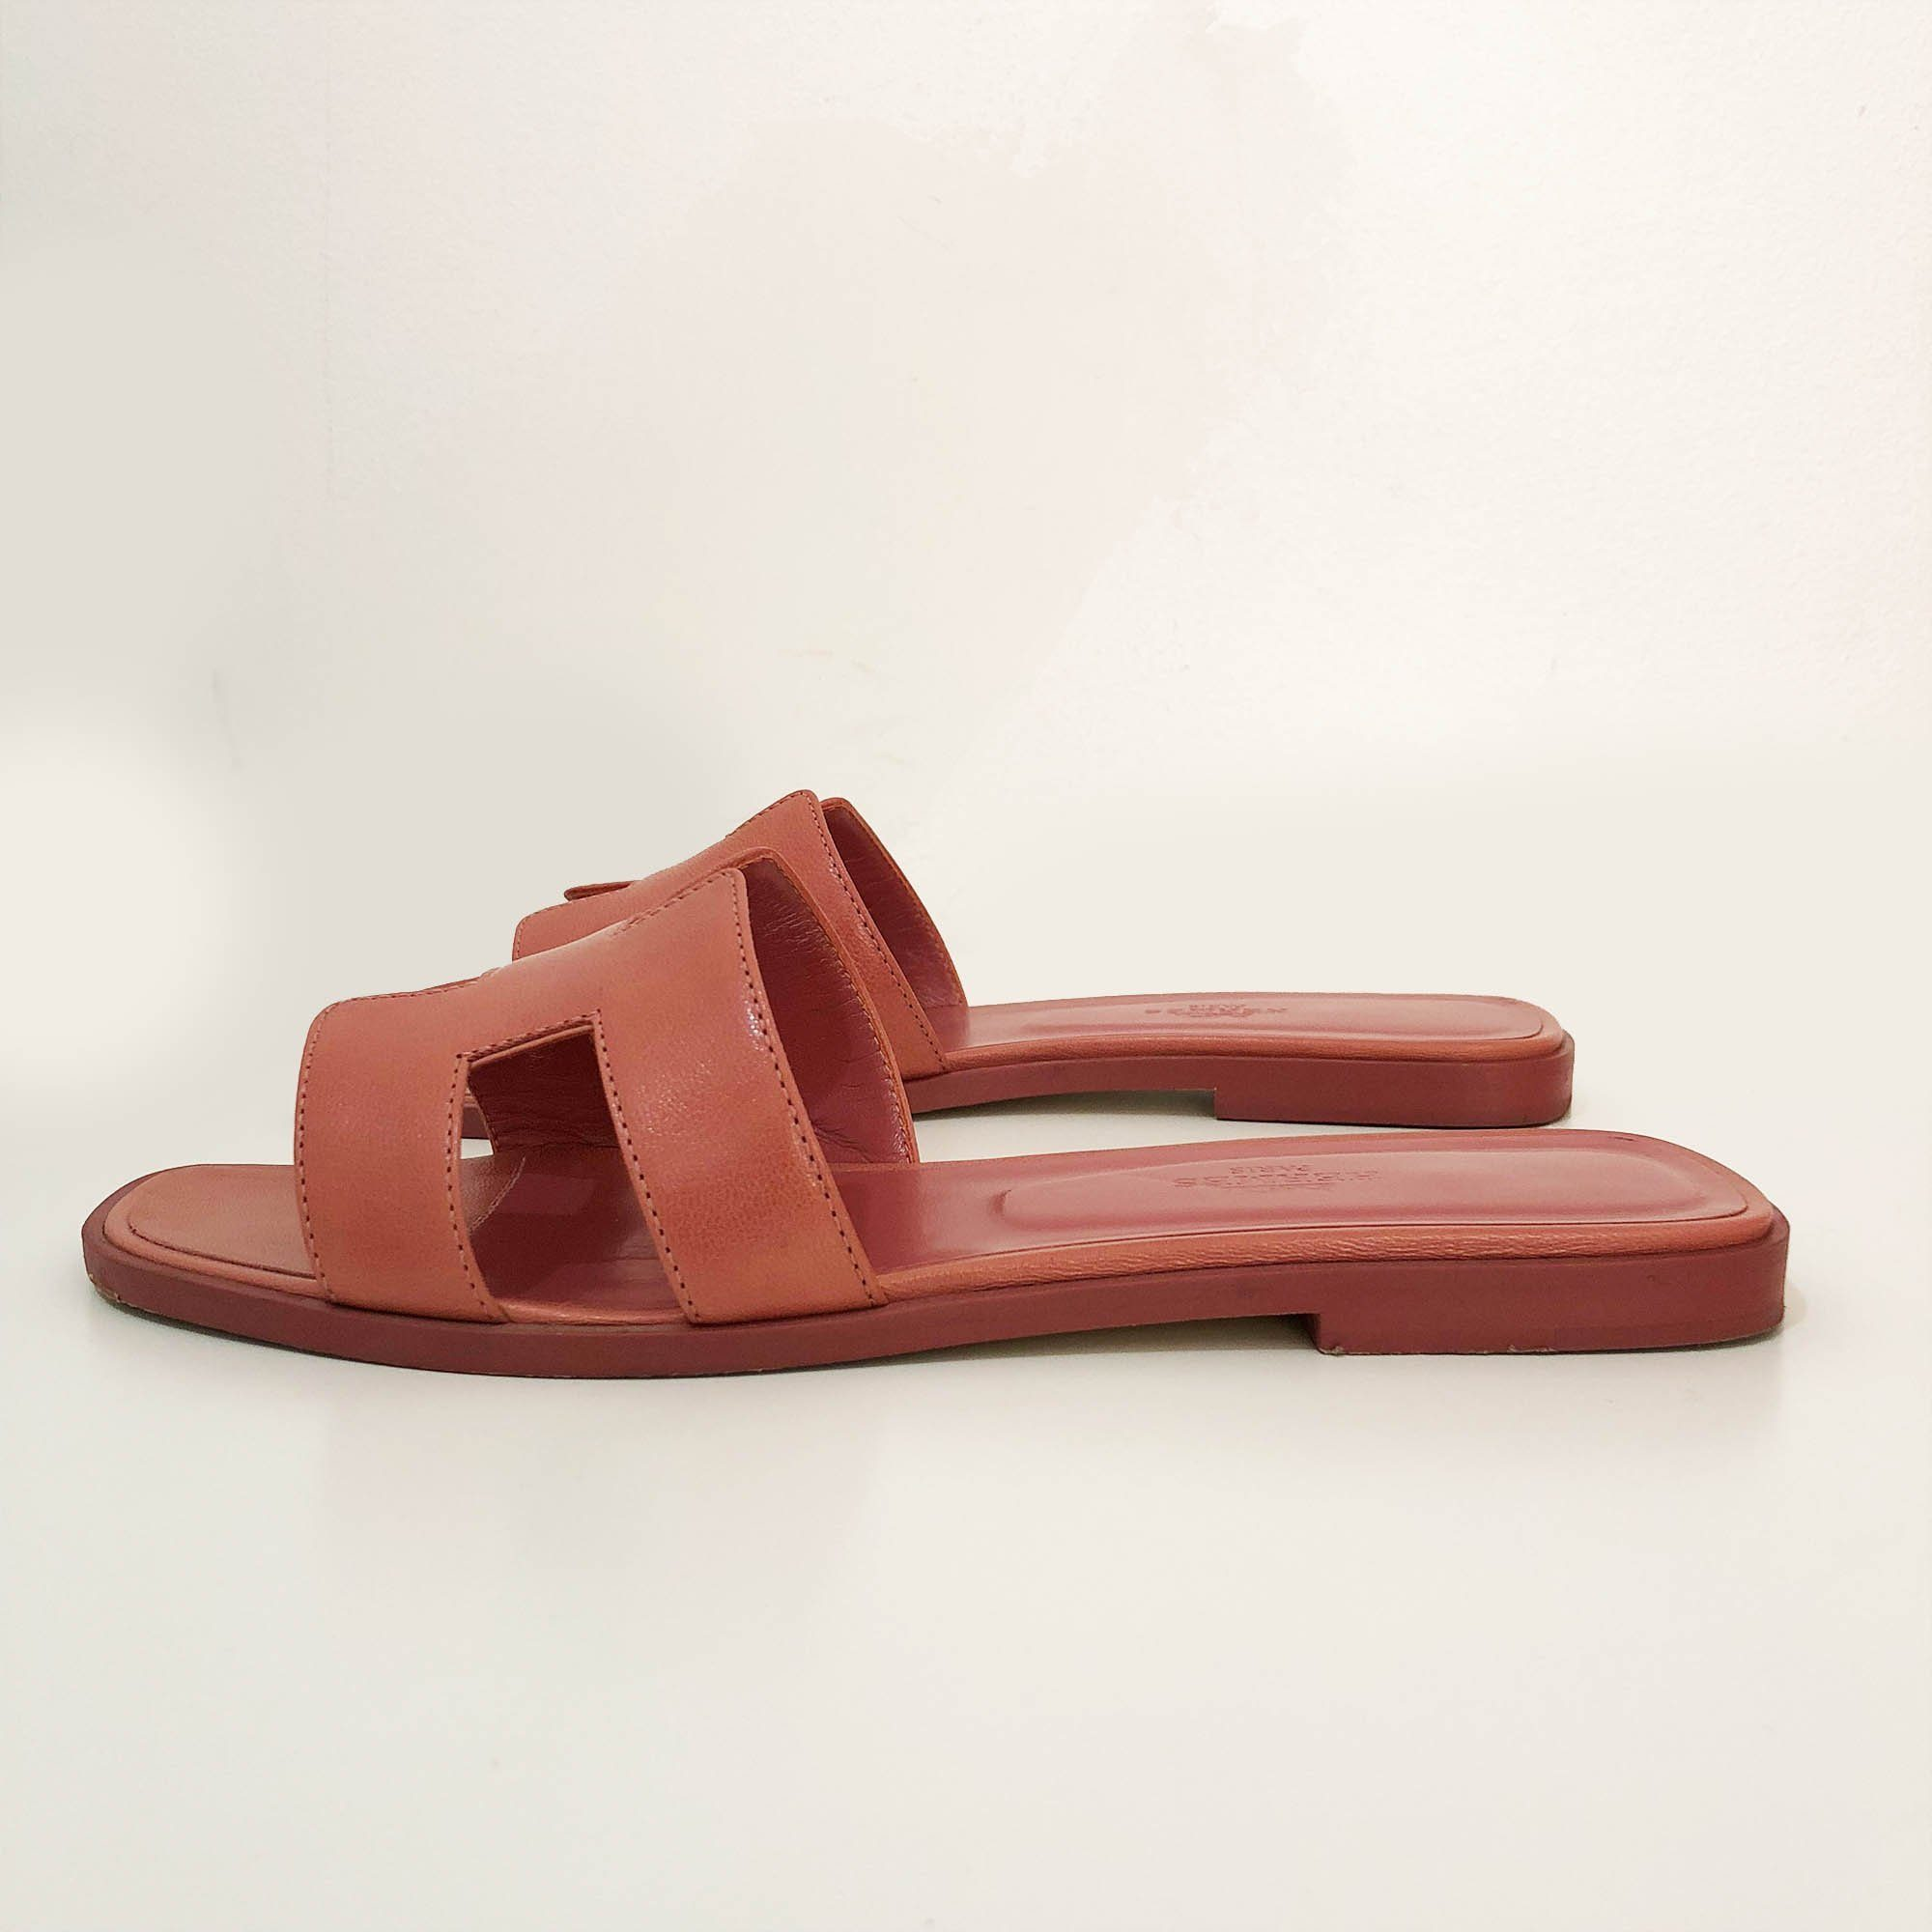 Hermes Rouge Blush Oran Slippers